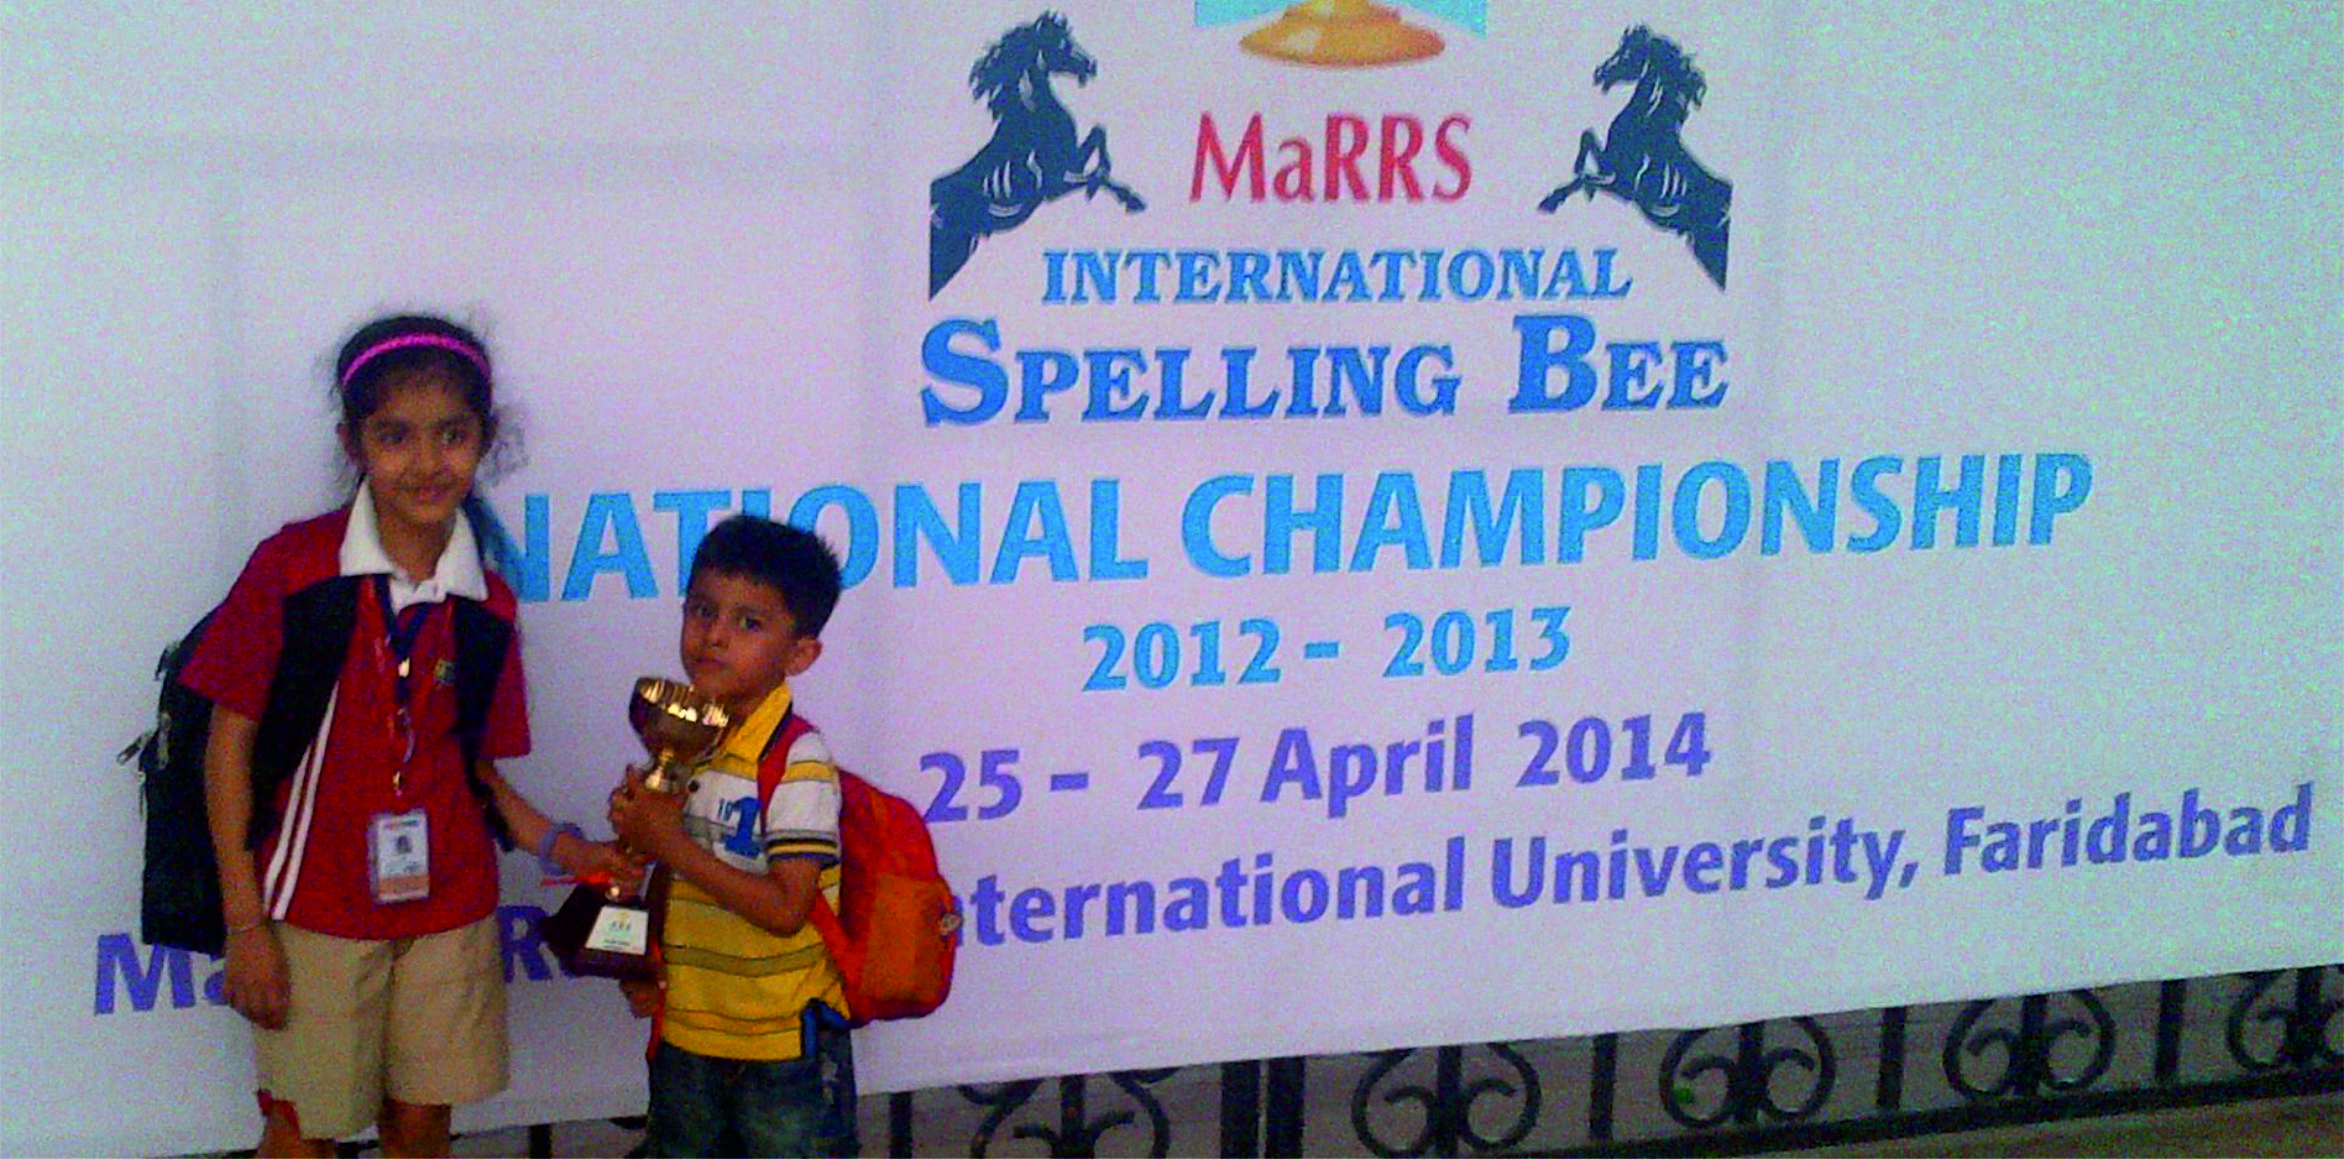 marrs spelling bee